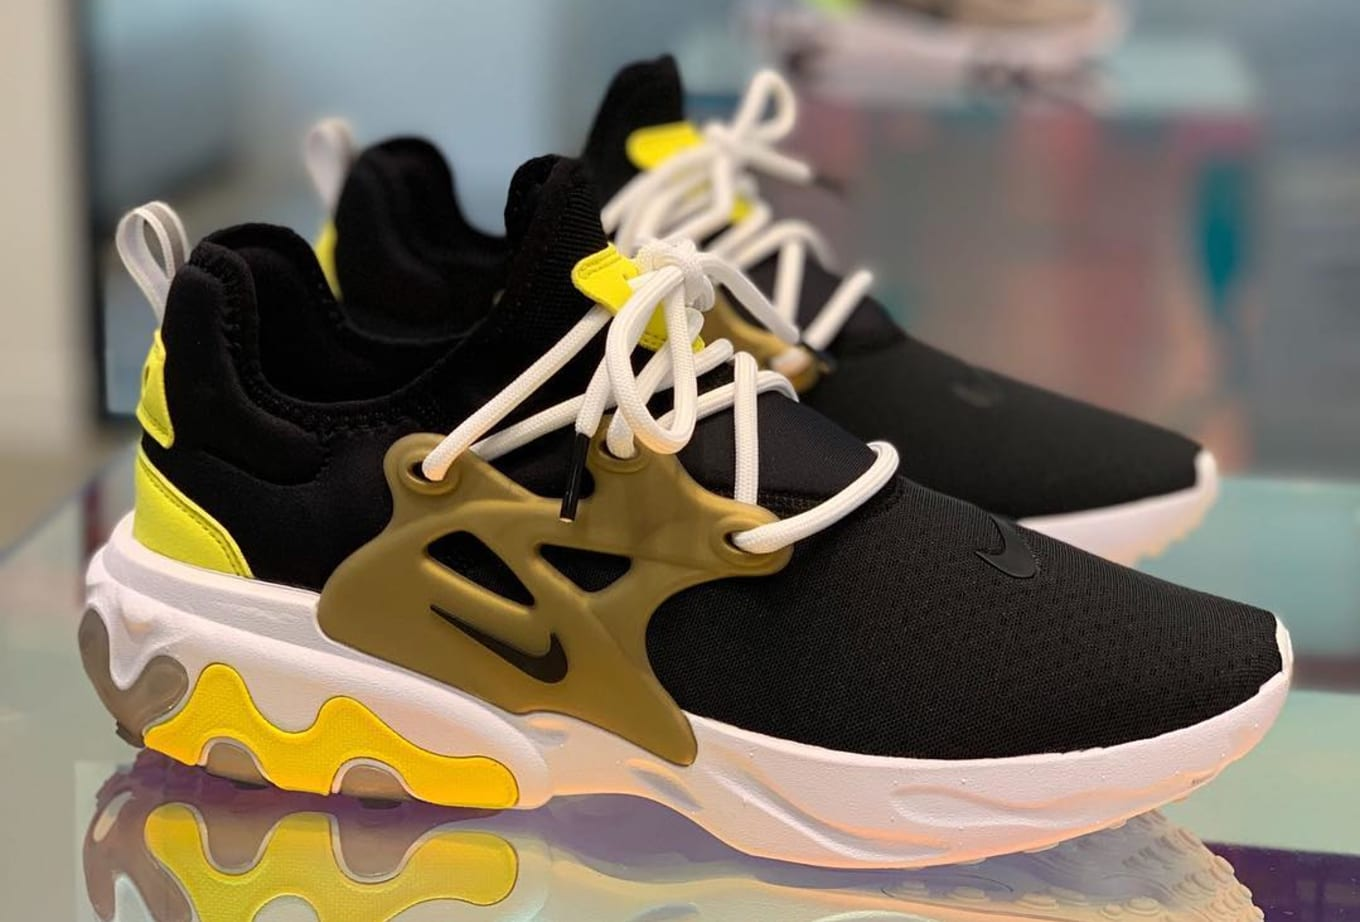 brand new ca7f2 4d047 Nike Presto React 2019 Images | Sole Collector